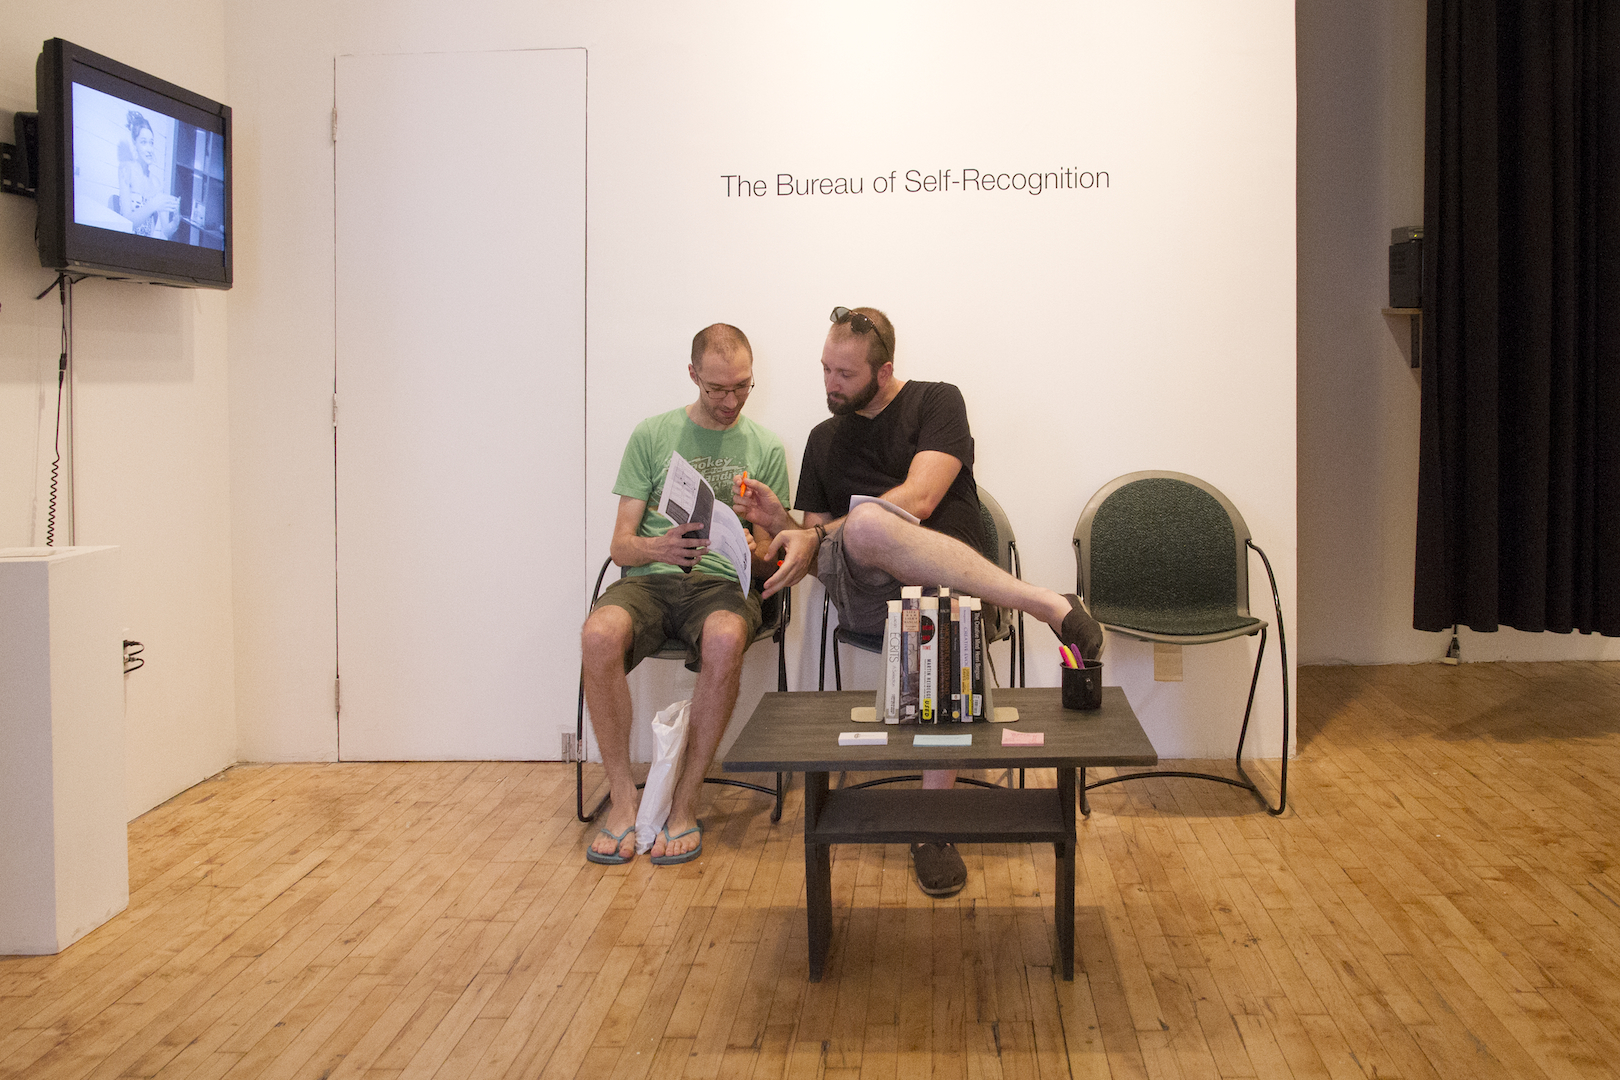 Installation View: Waiting Room